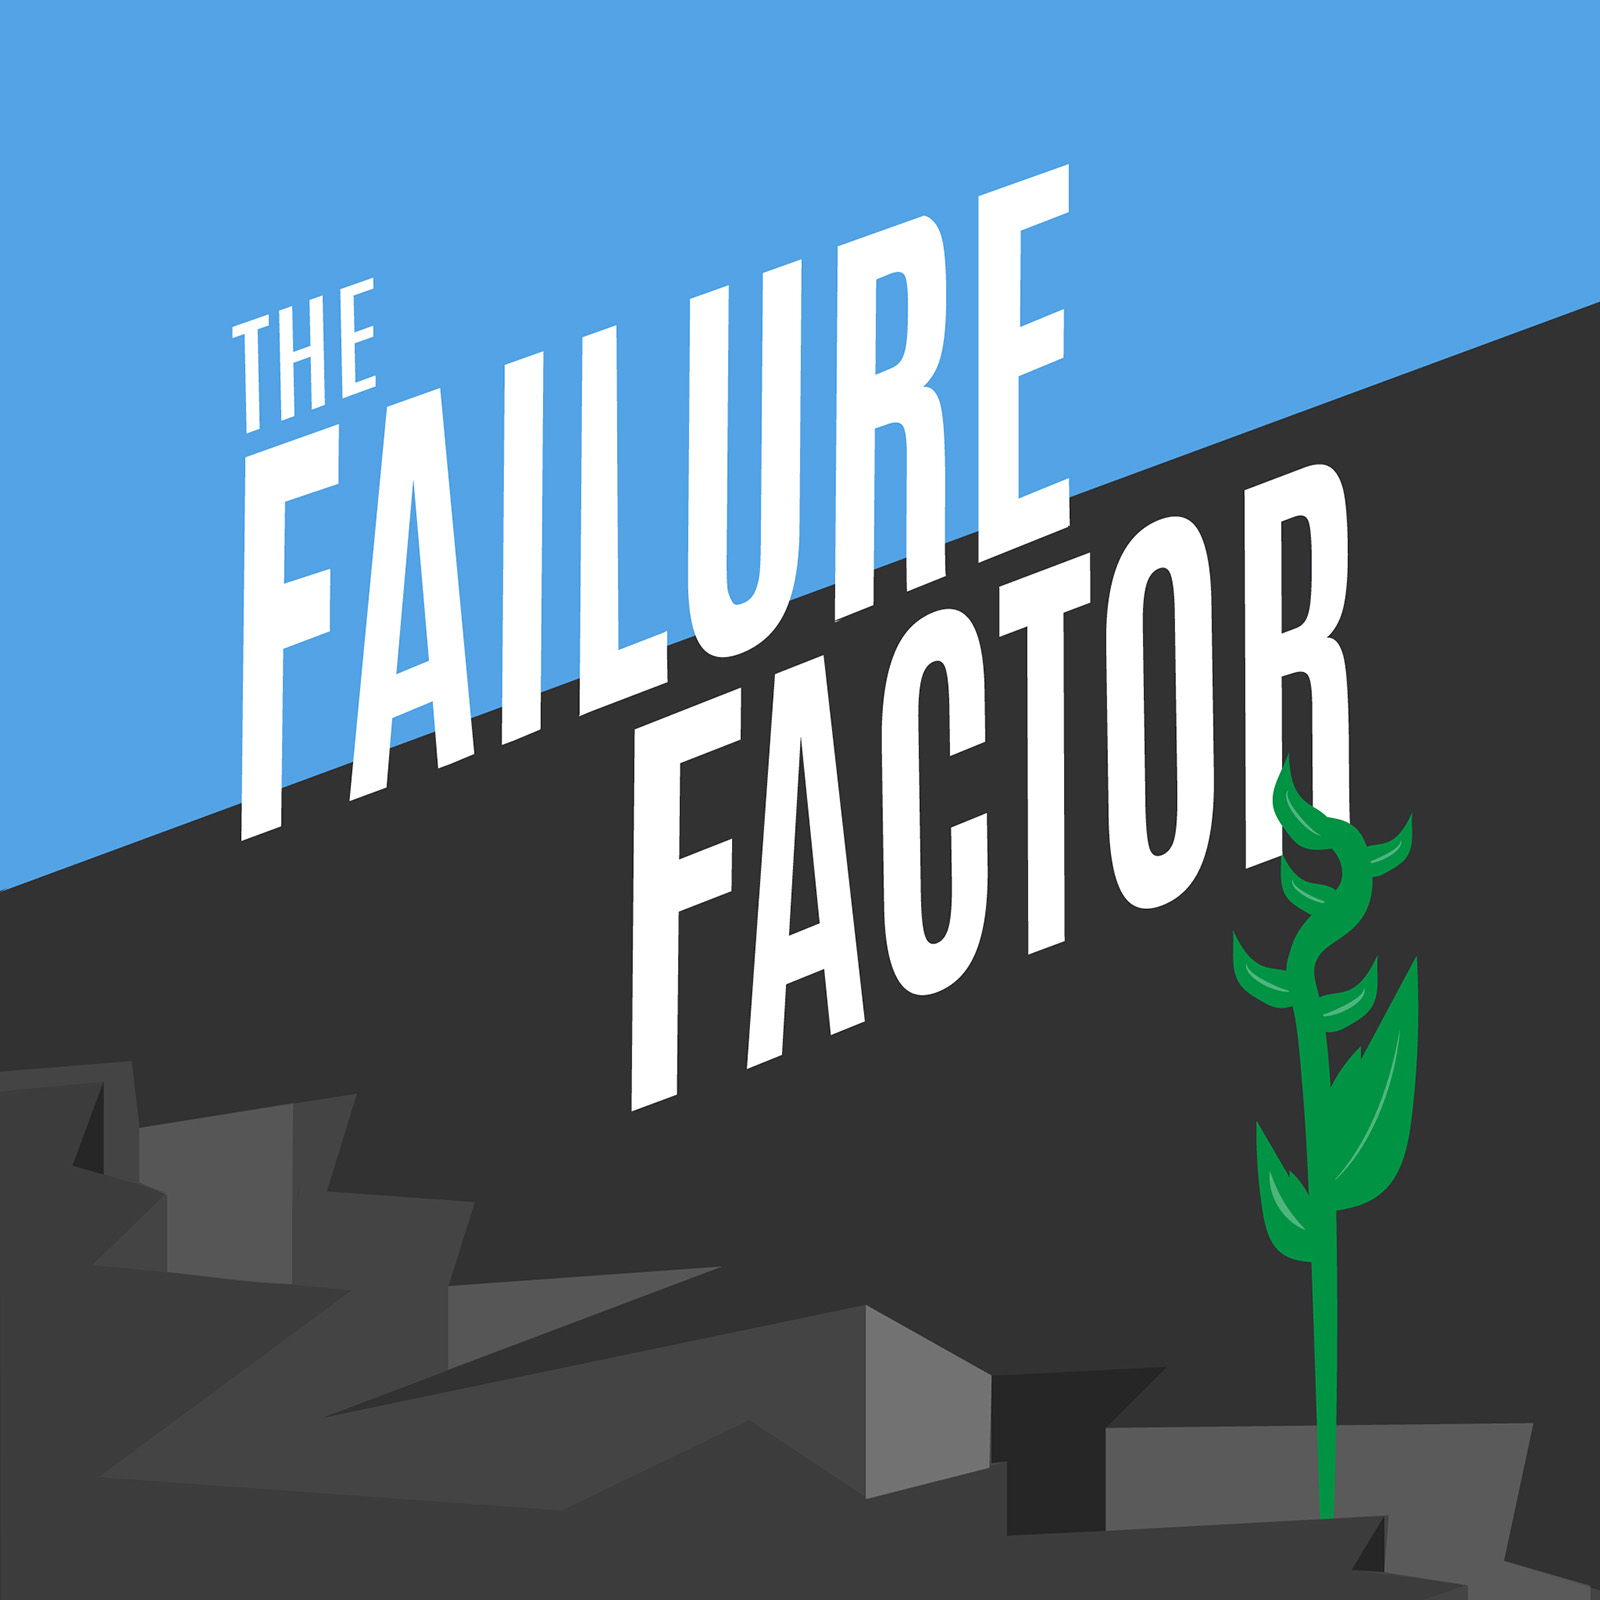 Artwork for The Failure Factor Episode 20: 'The Hundreds' CoFounder On Leaving Law To Follow His Dreams, Building A Trustworthy Brand, And Coping With The Entrepreneurial Roller Coaster